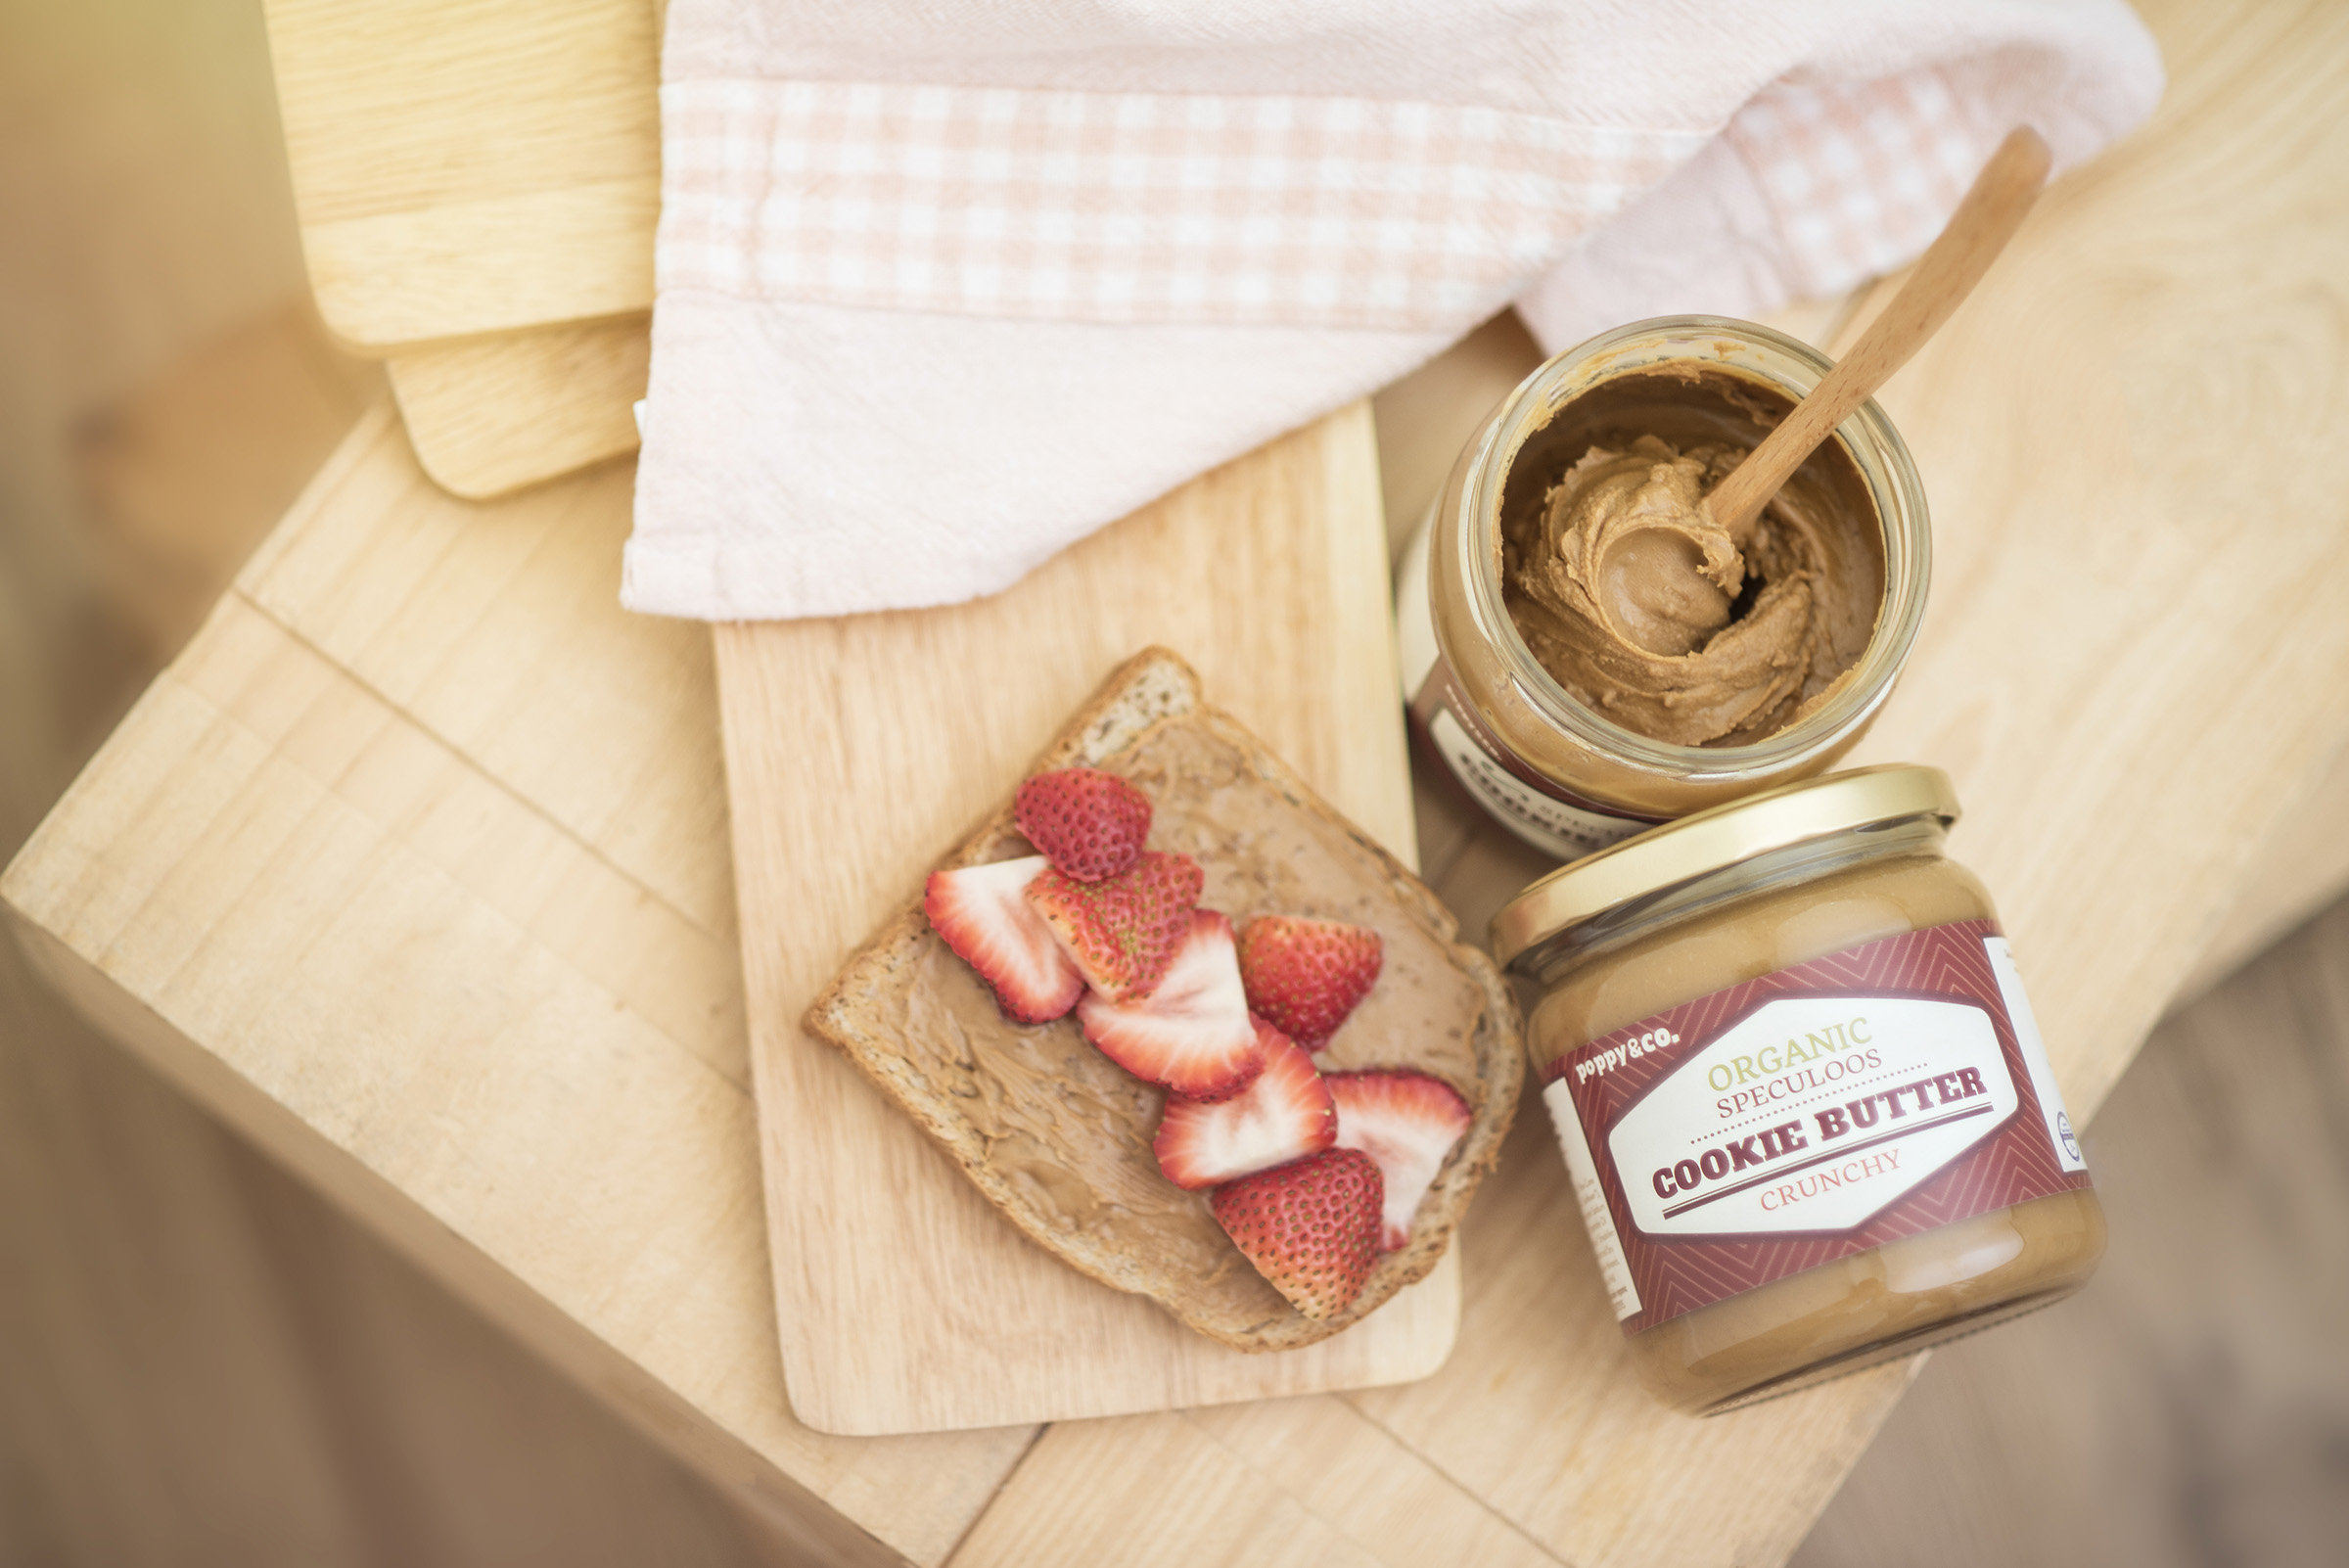 Organic Speculoos Cookie Butter Crunchy